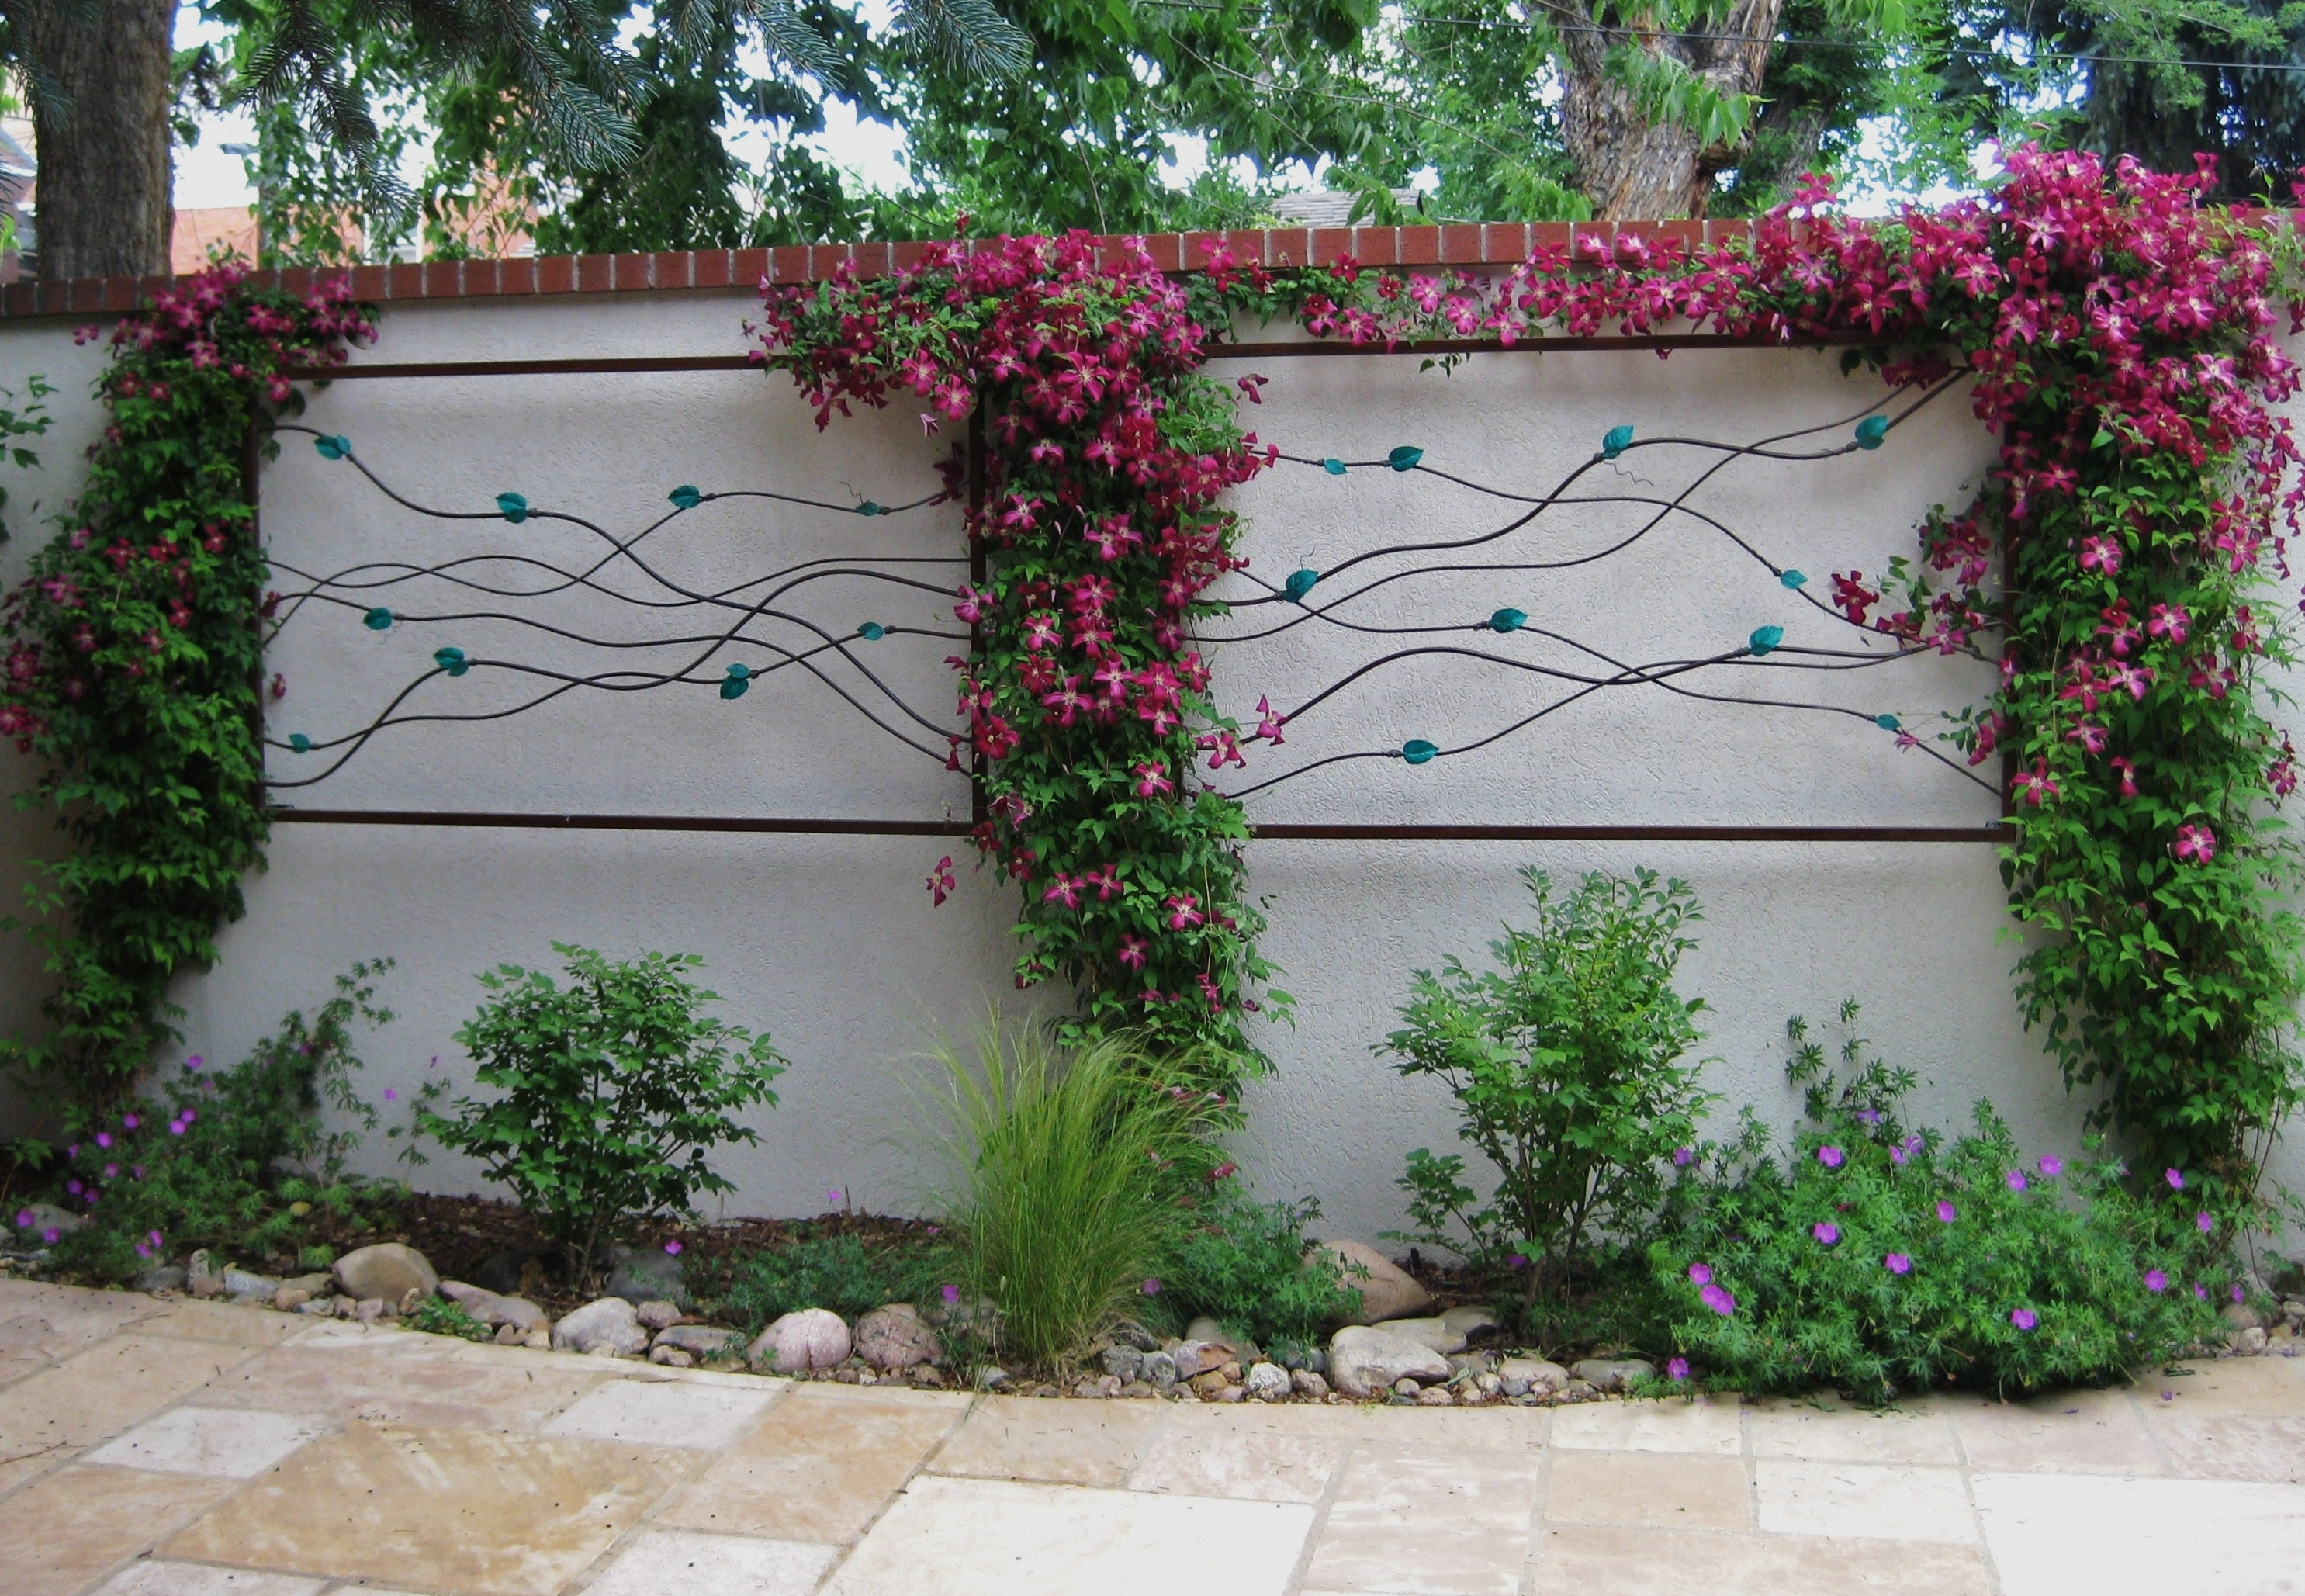 Best Of Wall Art Ideas For Garden | Wall Decorations With Regard To Current Outdoor Wall Art Decors (View 9 of 20)